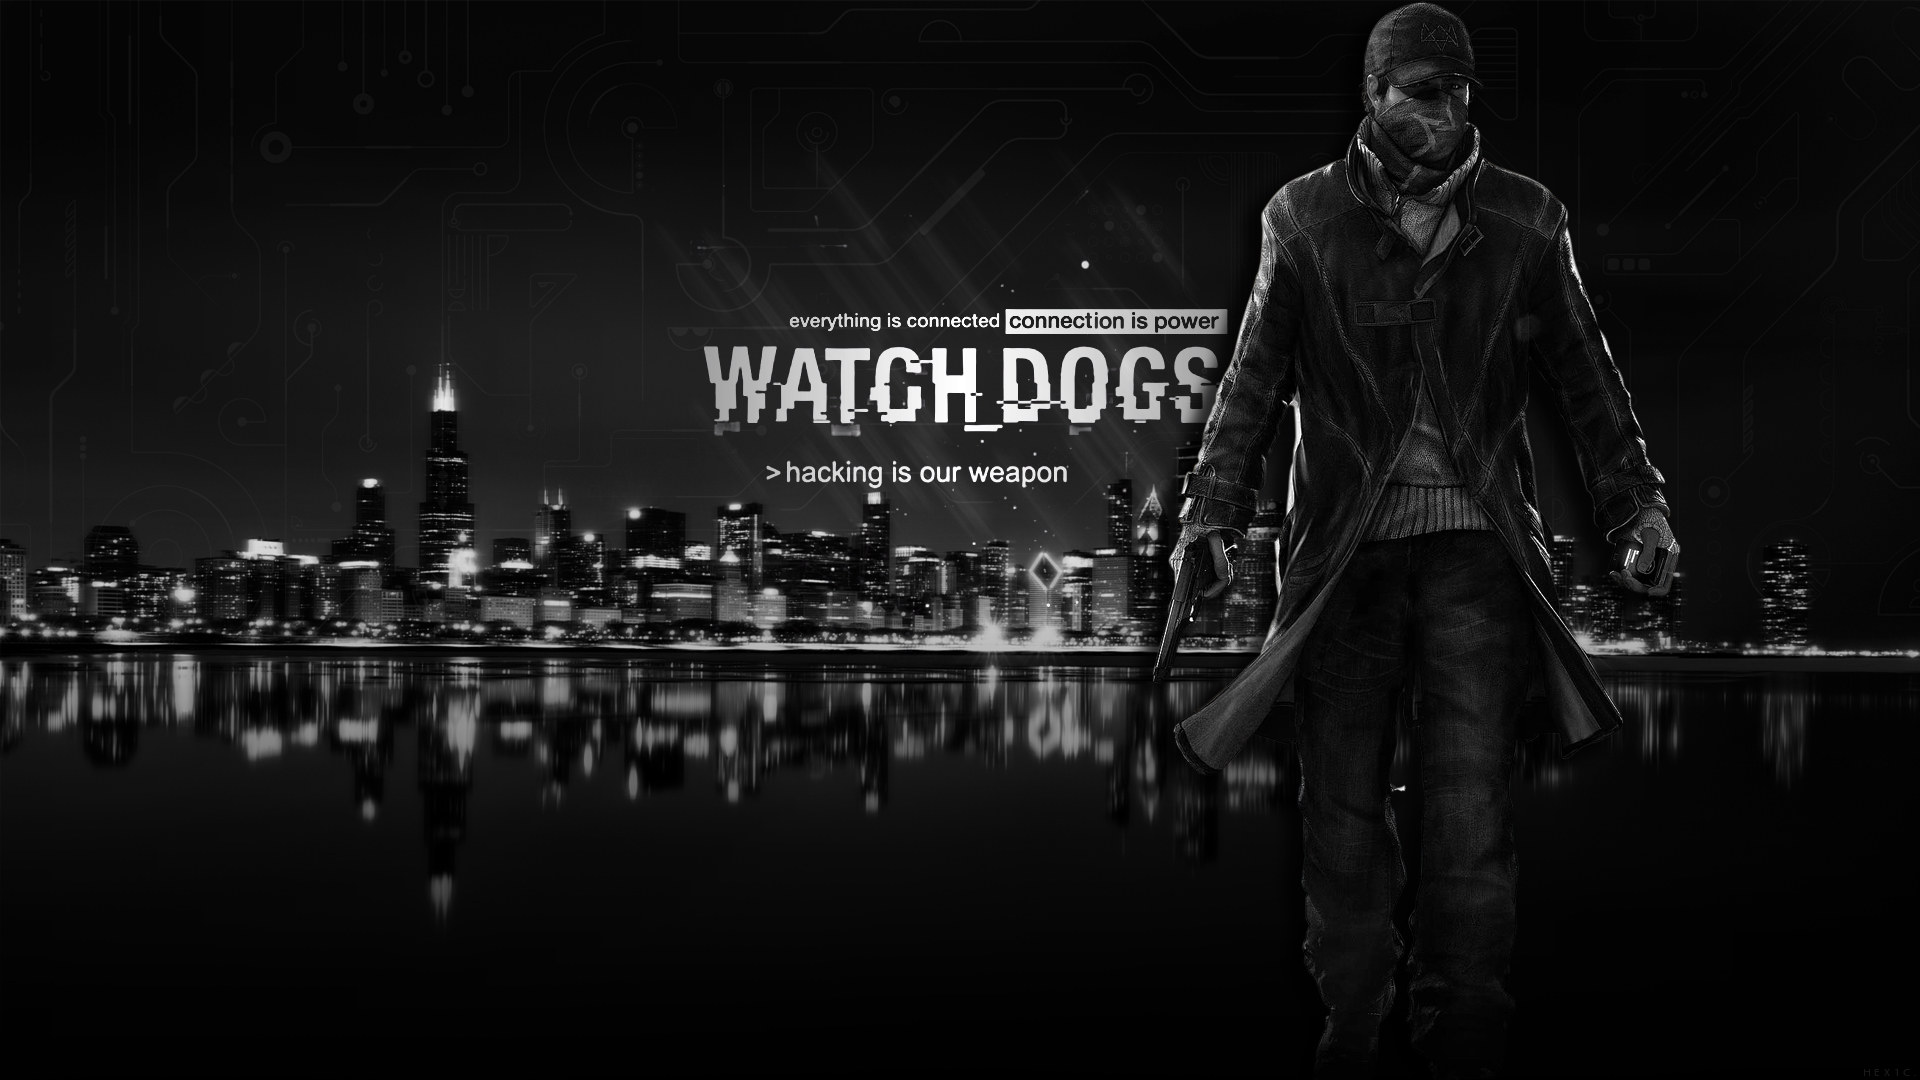 Watch Dogs Wallpaper HD by solidcell 1920x1080